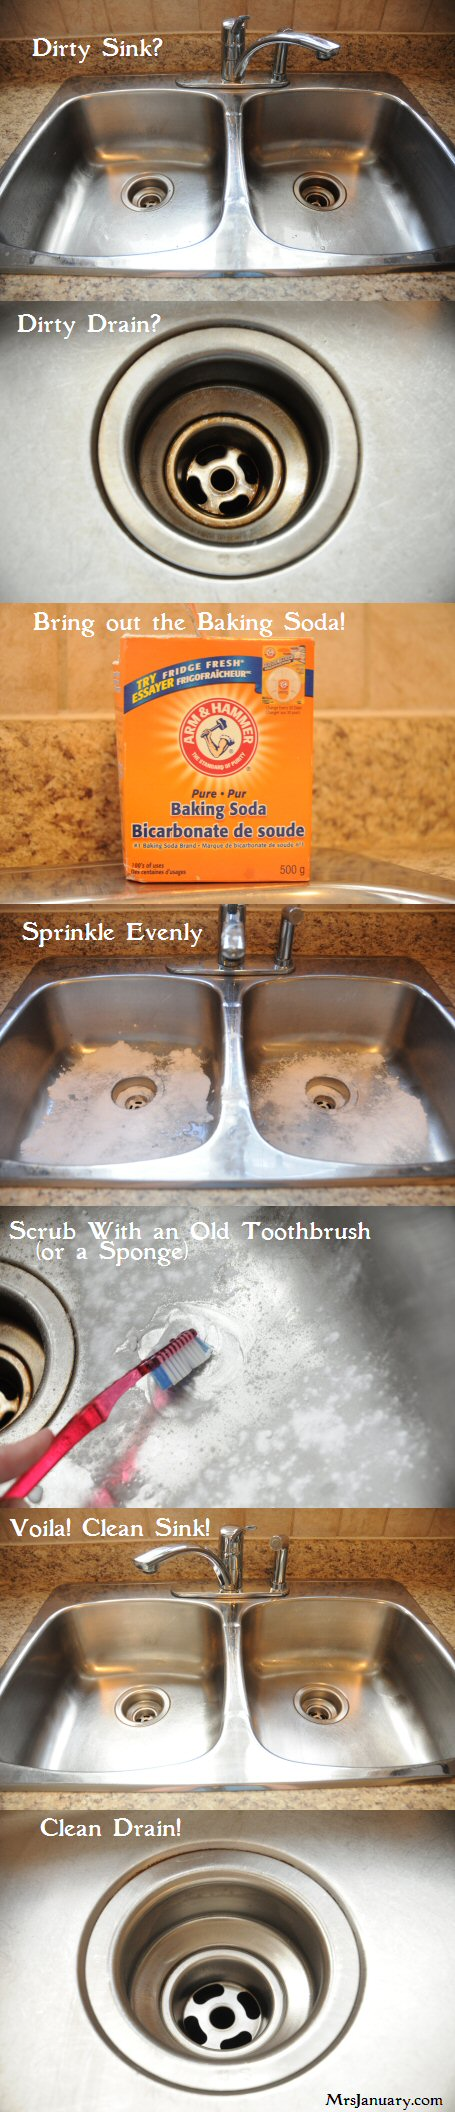 Make Your Stainless Steel Sink Shine